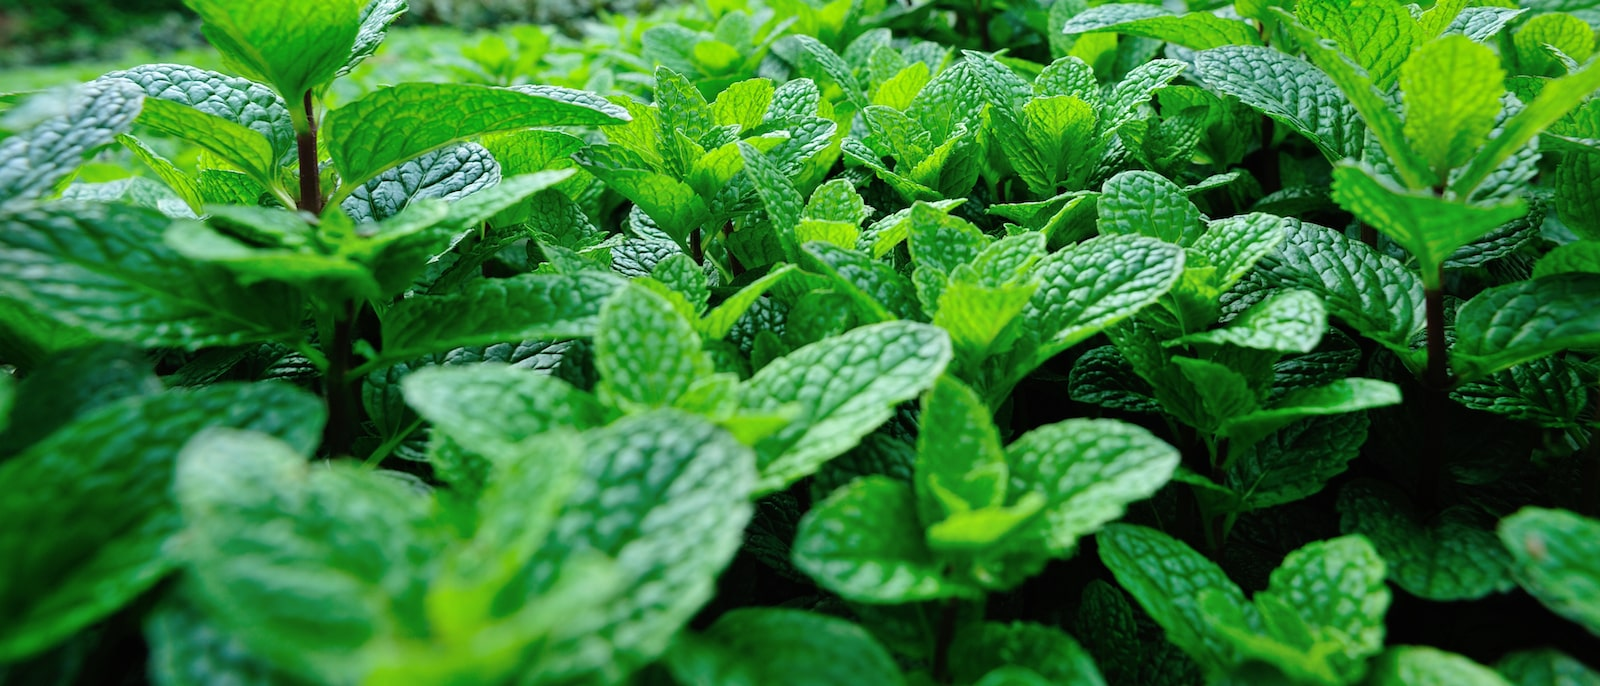 The Top 5 Health Benefits of Mint